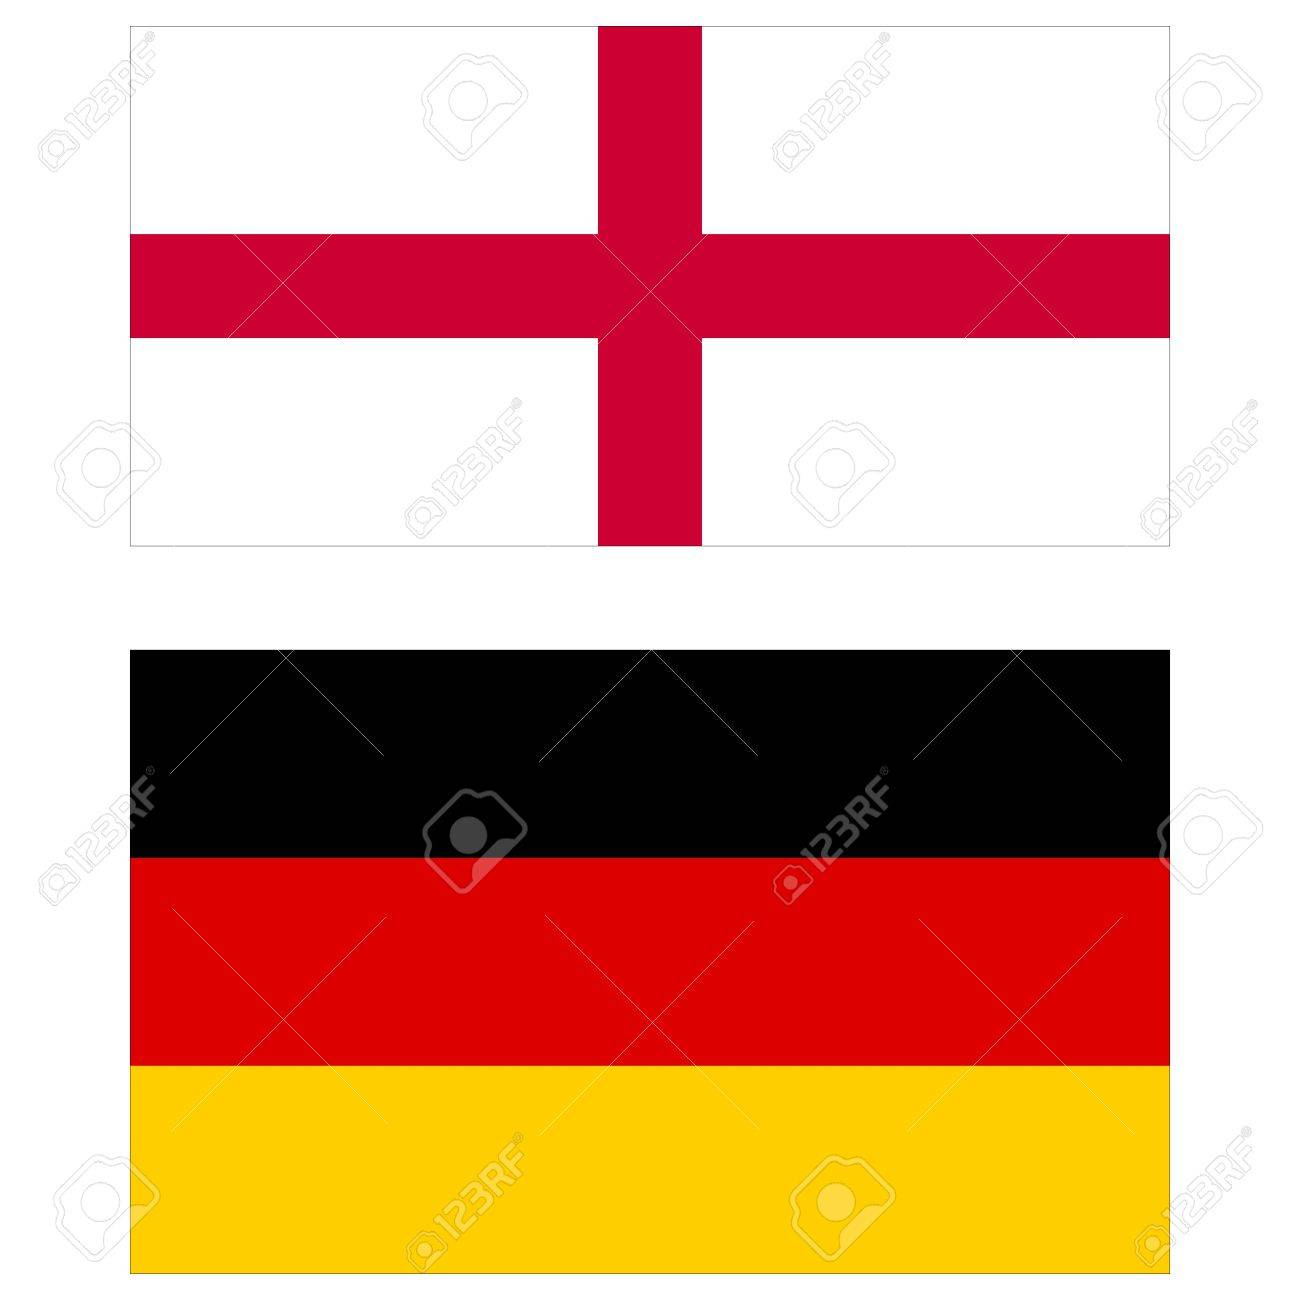 england vs germany flags of the two countries stock photo